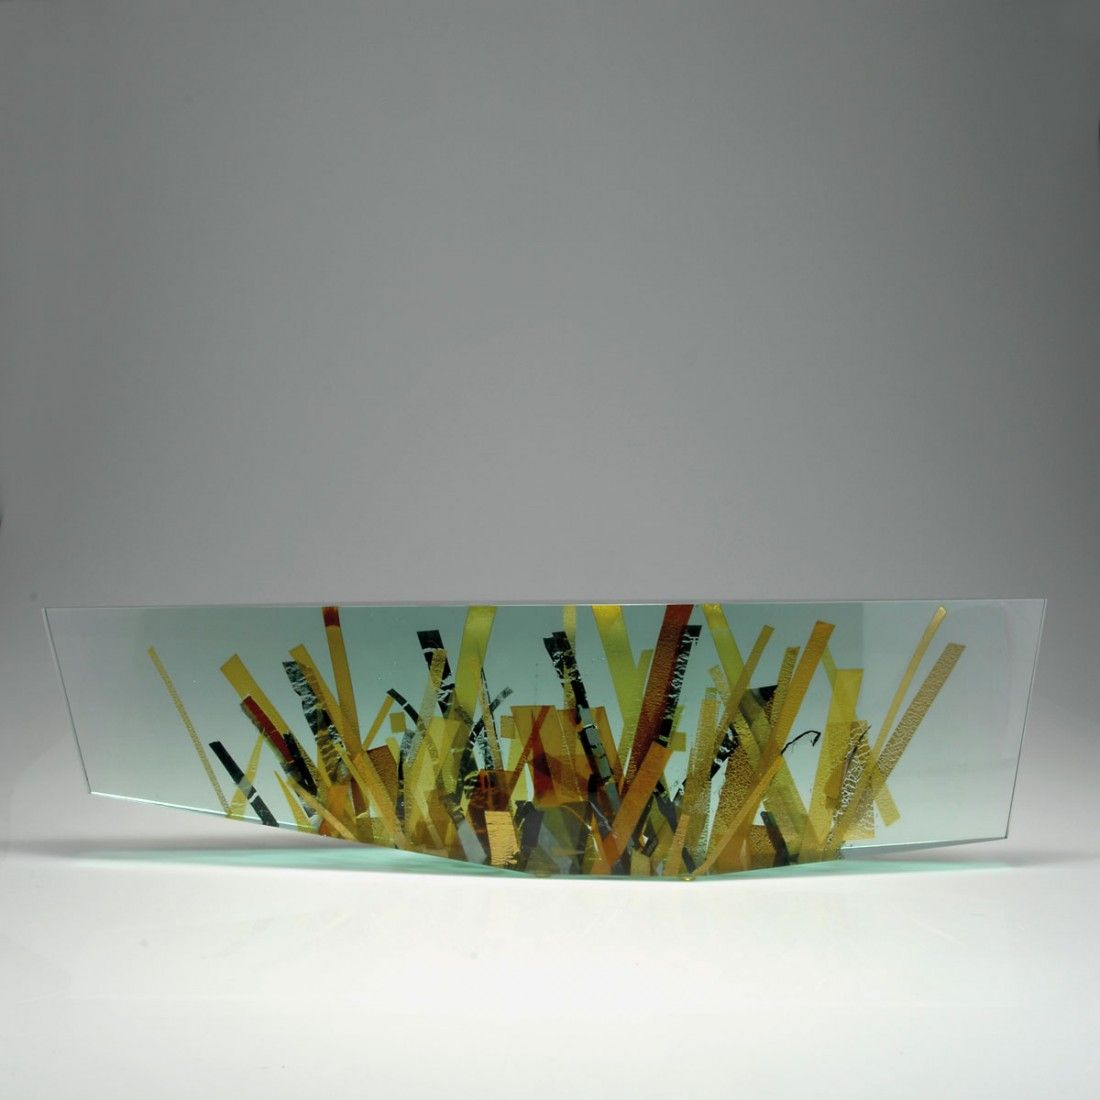 Tomas Hlavicka. Sculpture, 1999.  Clear glass block, cast and polished, included metal bands in gold, silver and bronze